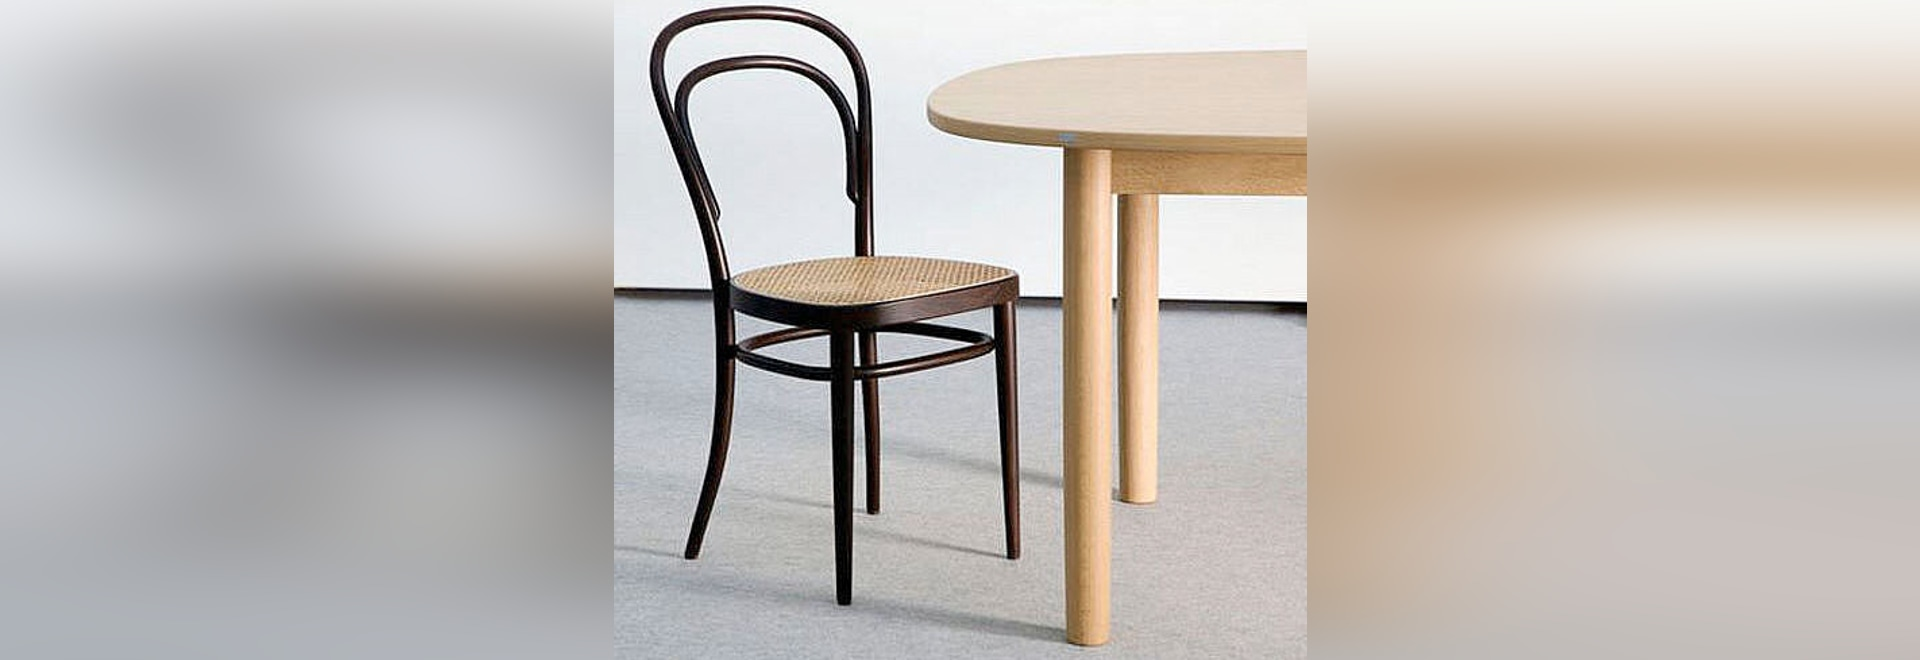 Simply legendary: the unique success story of Thonet''s original Vienna Coffee House Chair 214